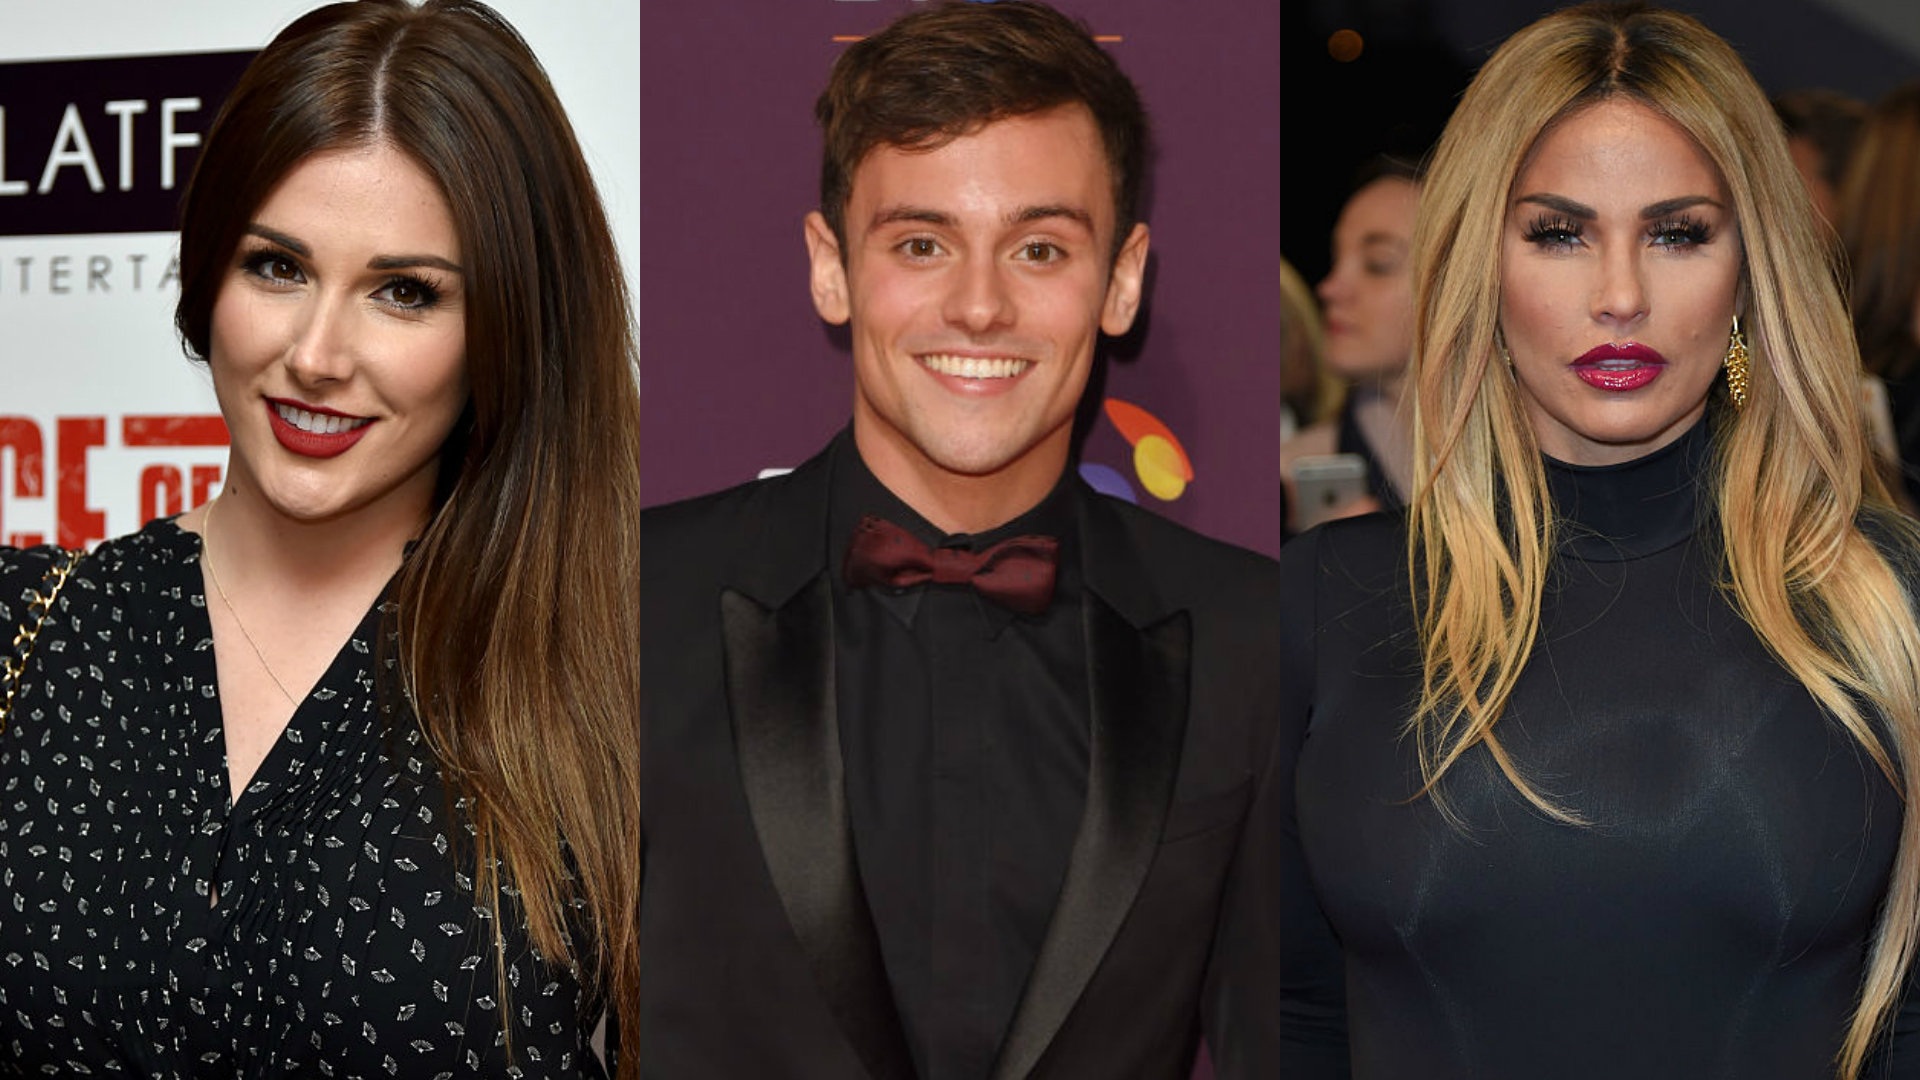 Sharknado stars Lucy Pinder, Tom Daley and Katie Price